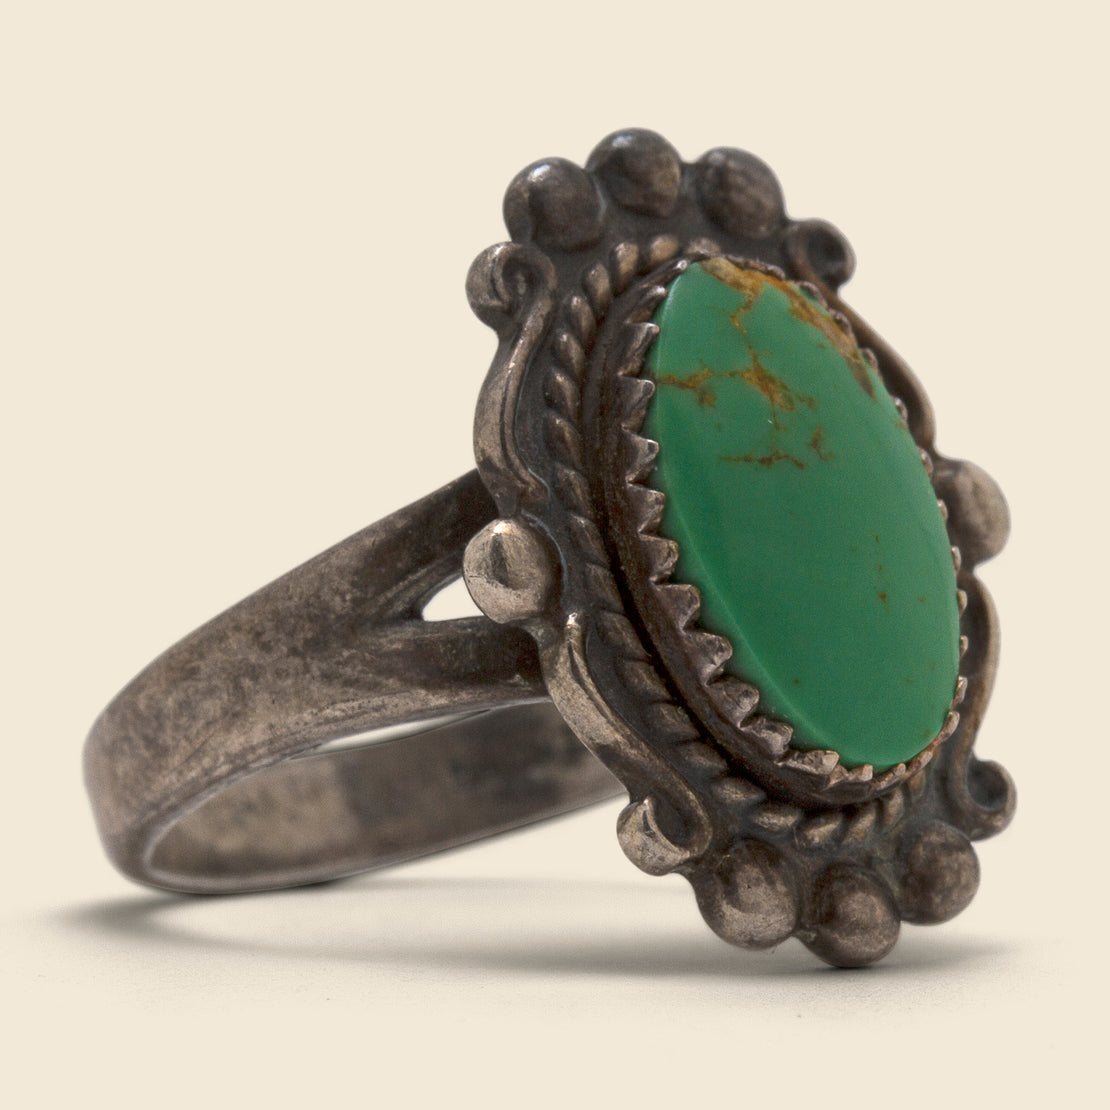 Vintage Oval Scalloped Turquoise Ring - Sterling Silver